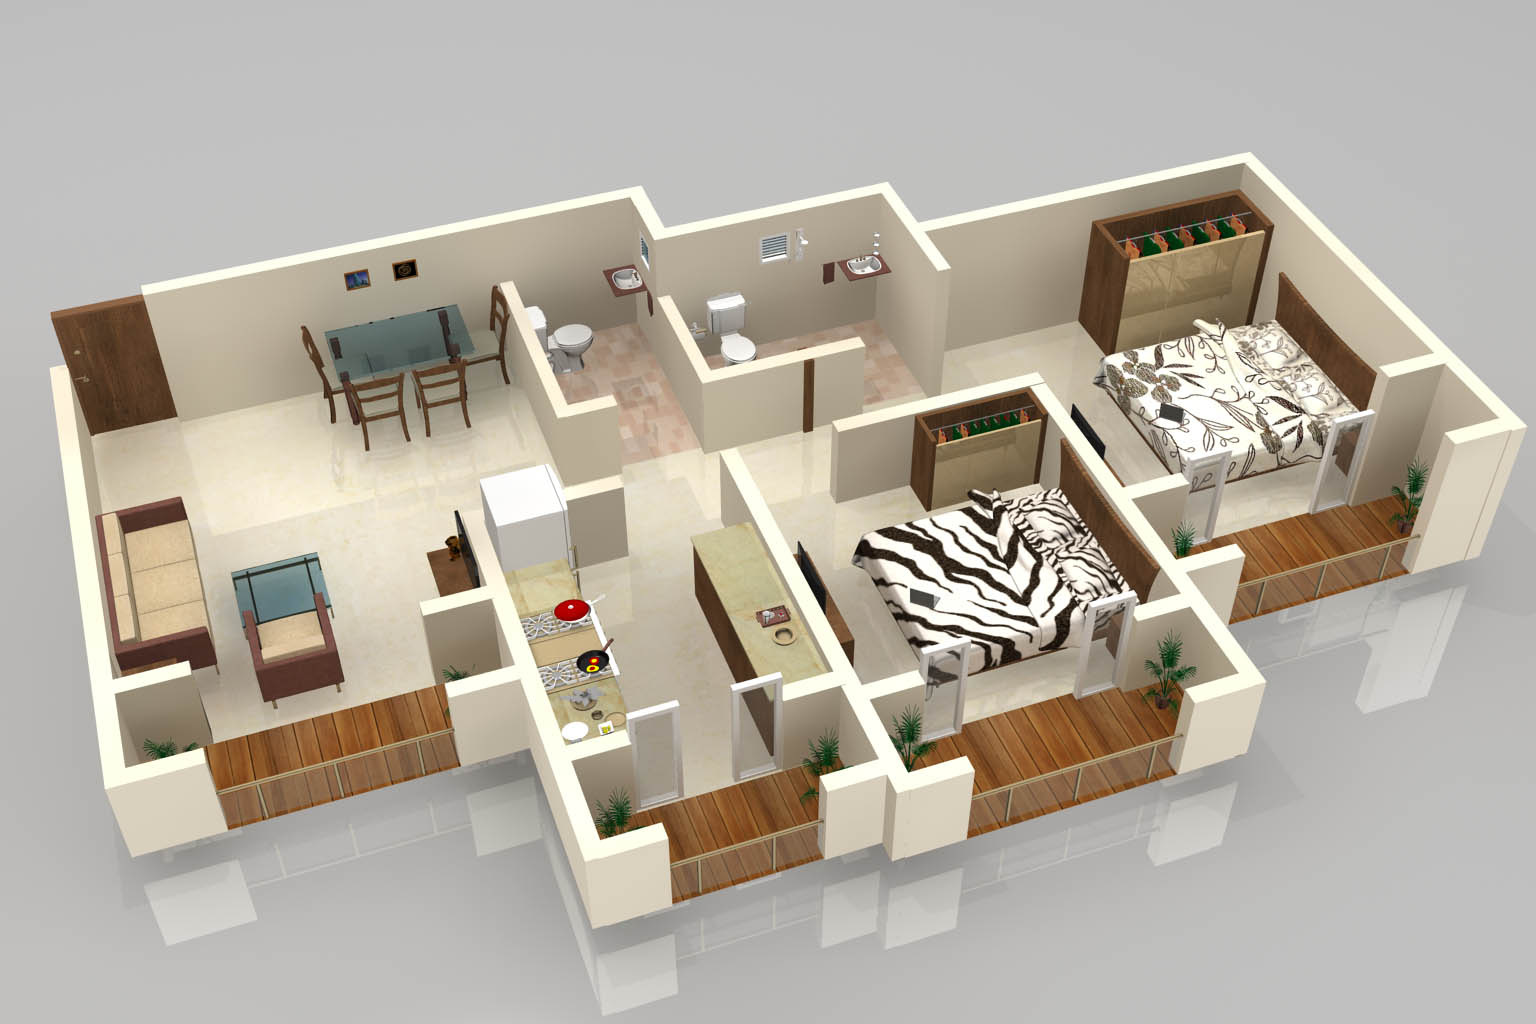 3d floor plan by atul gupta at